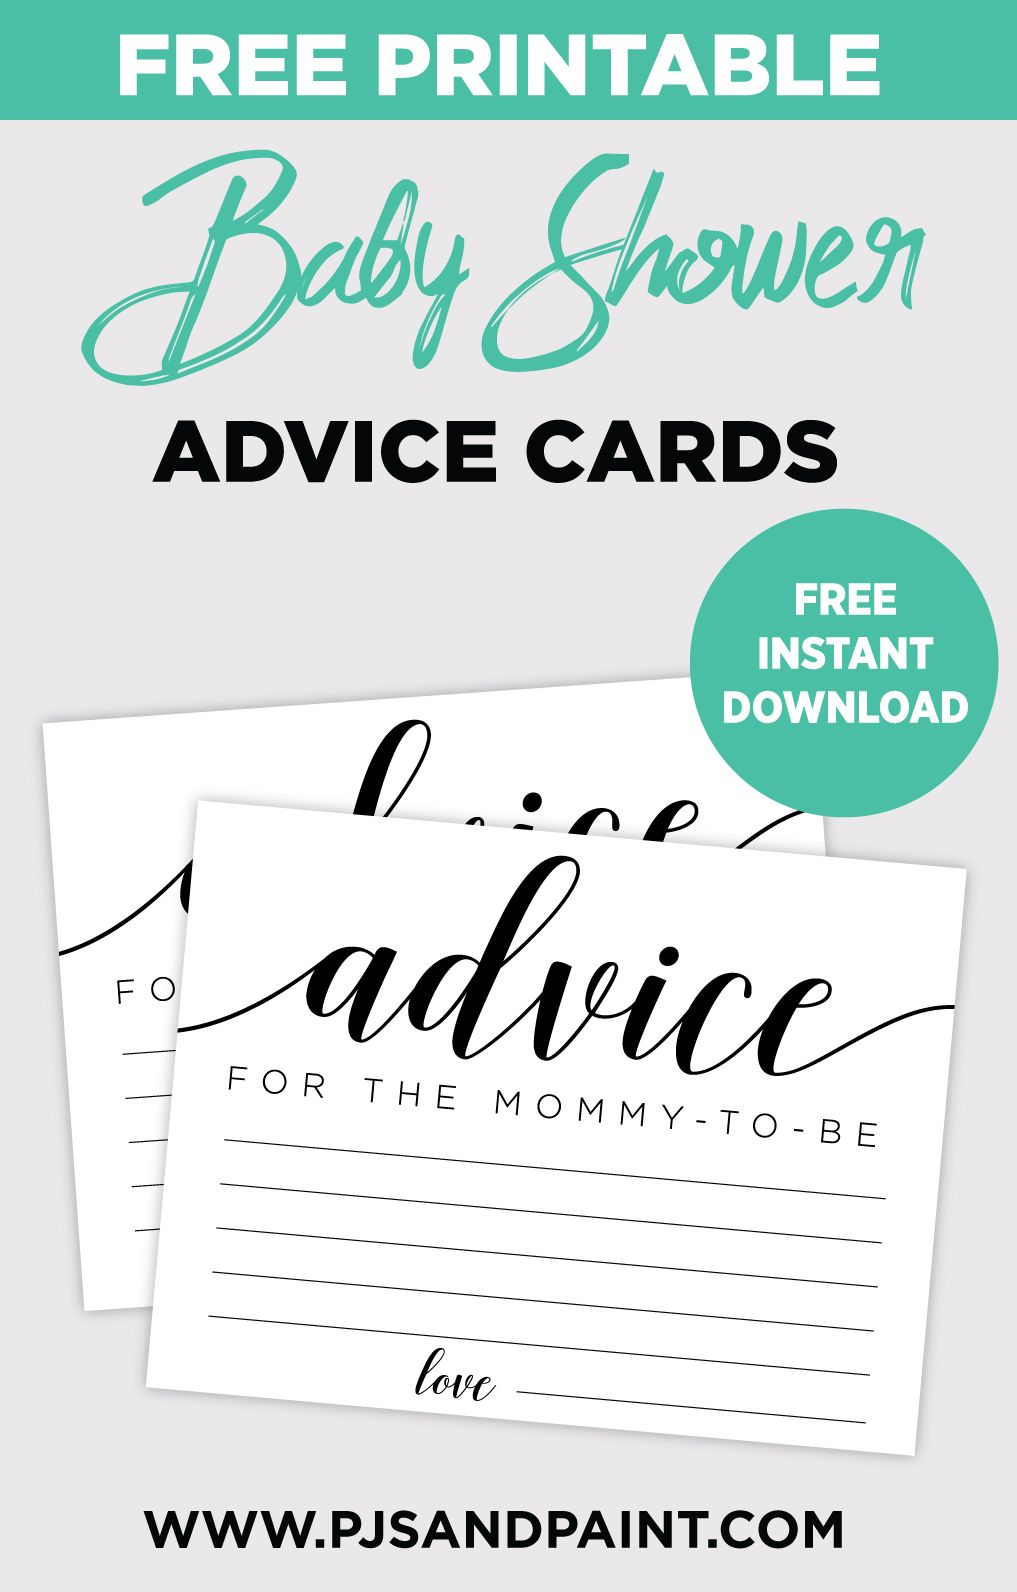 Free Printable Baby Shower Advice Cards Baby Shower Advice Free Baby Shower Printables Baby Shower Advice Cards